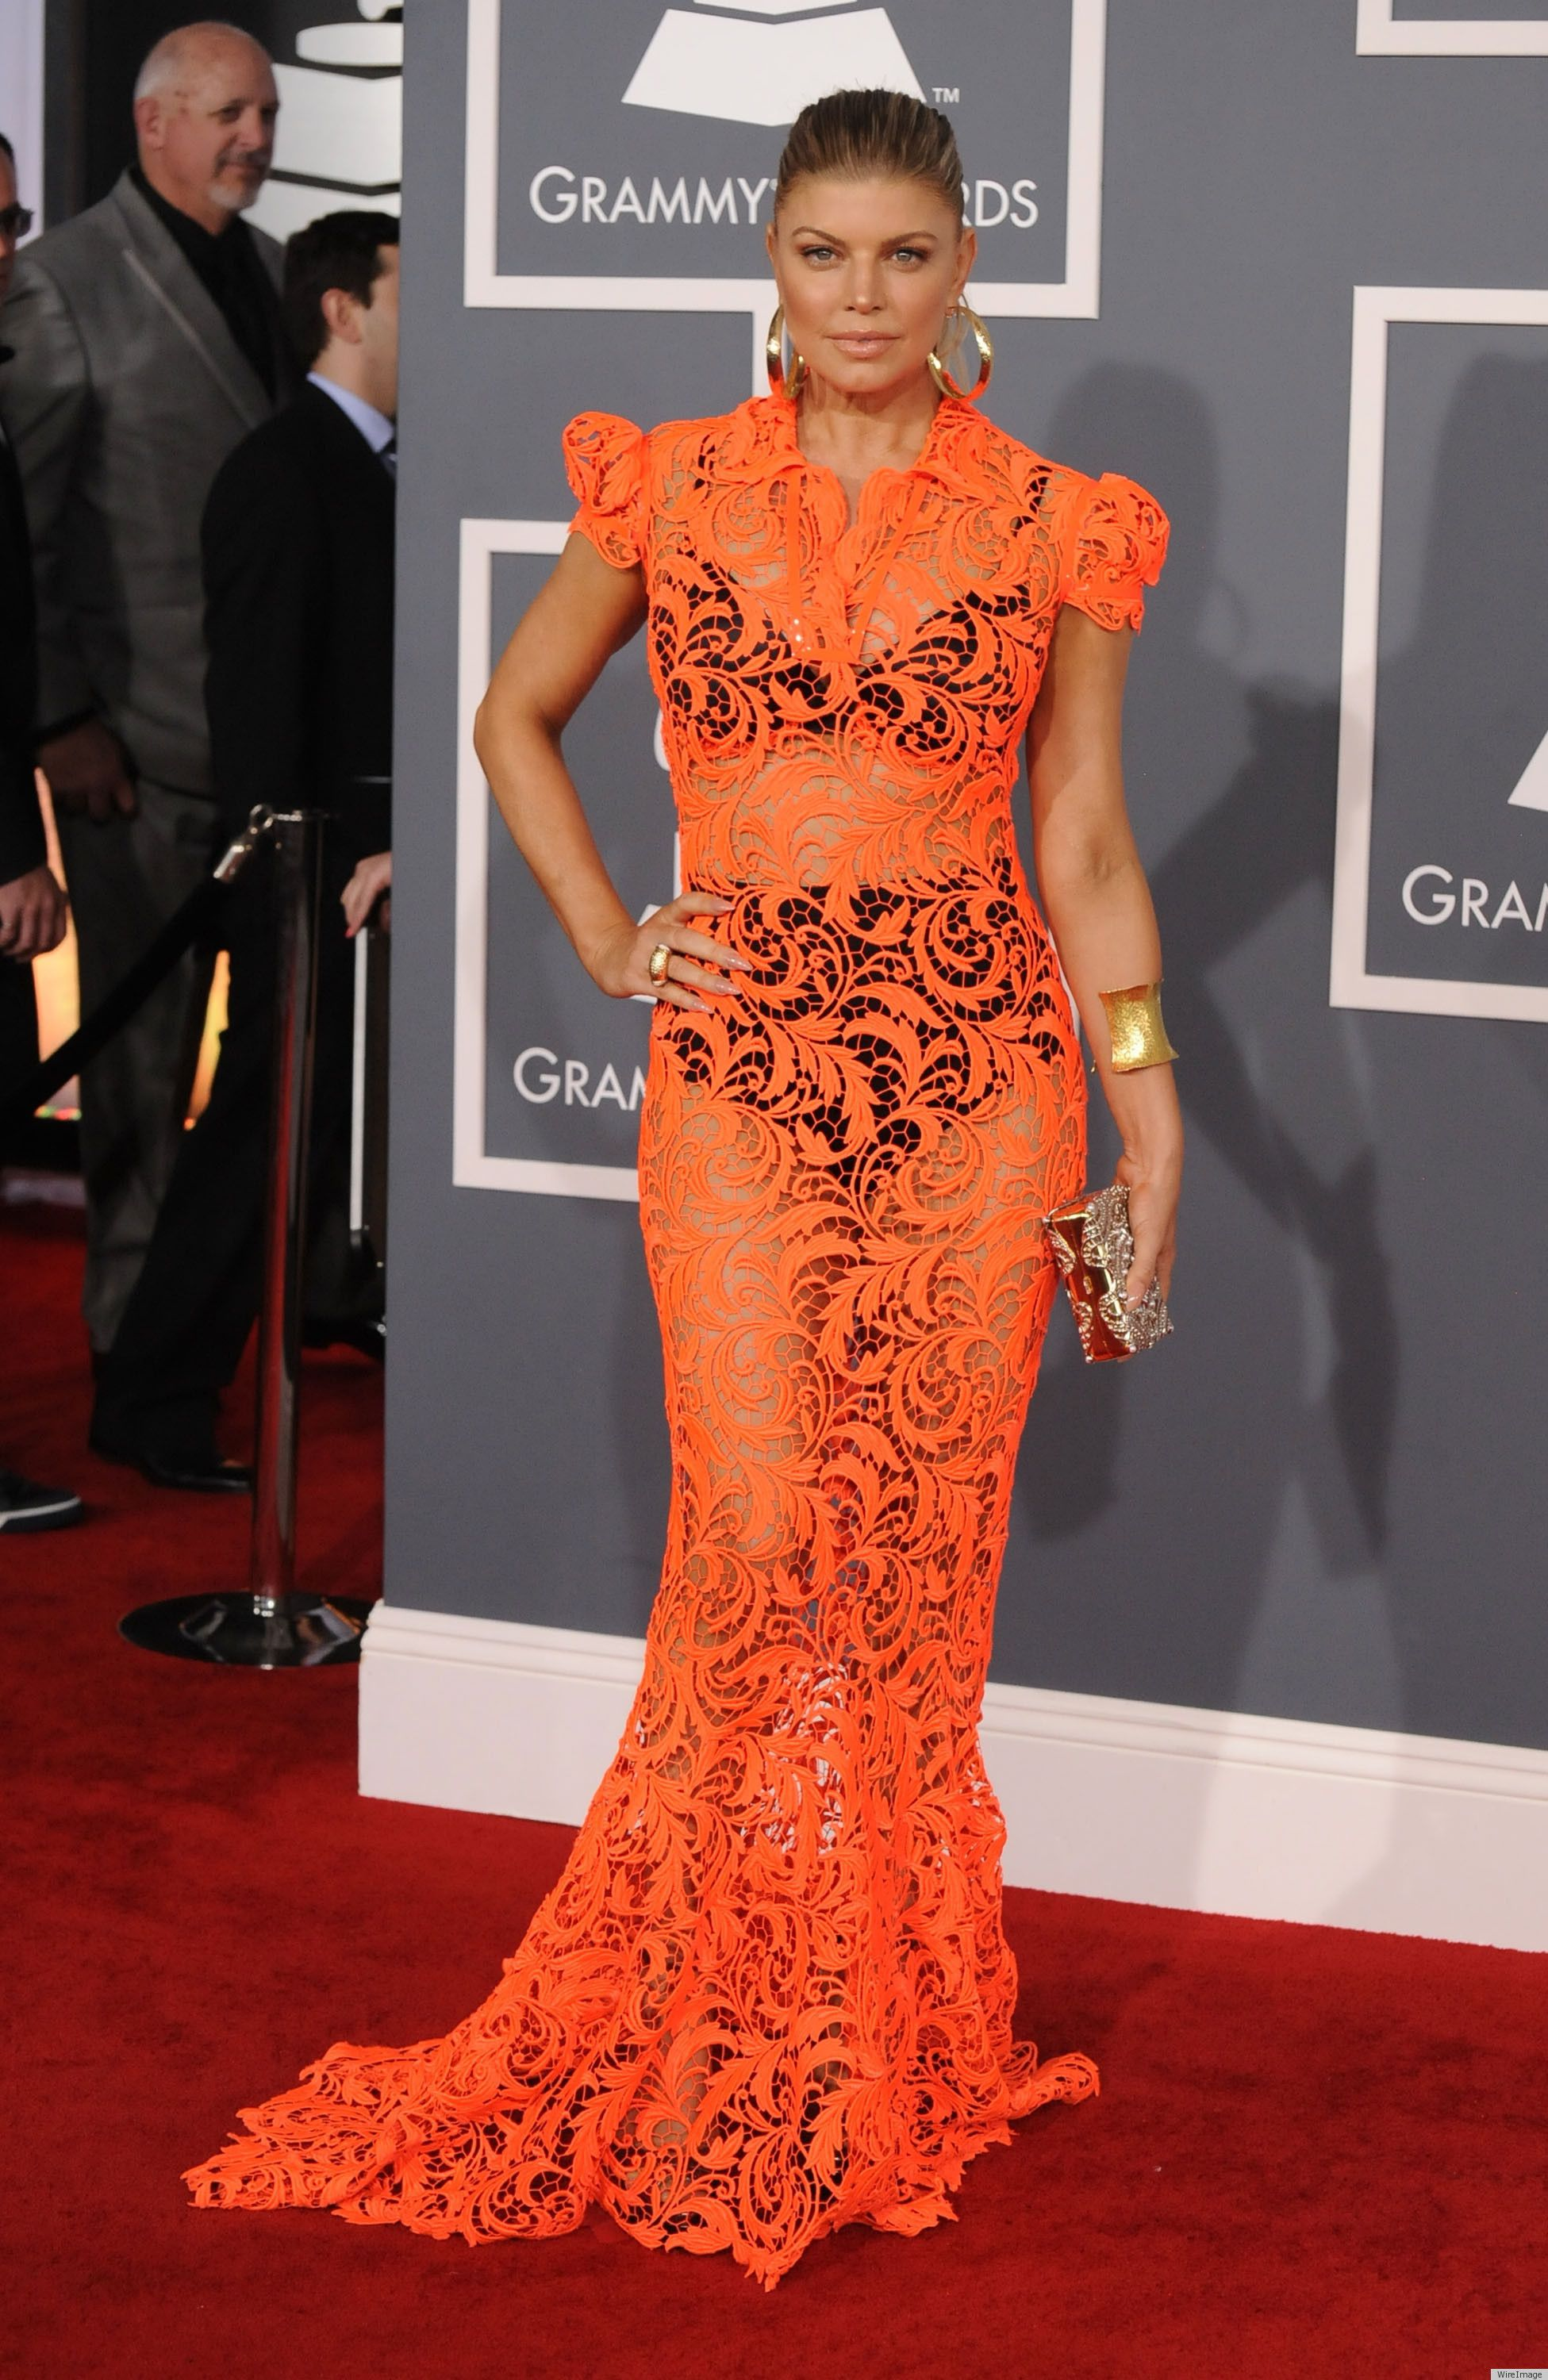 PHOTOS: Fergie's Risky Grammys Dress | Red carpet fashion, Online ...